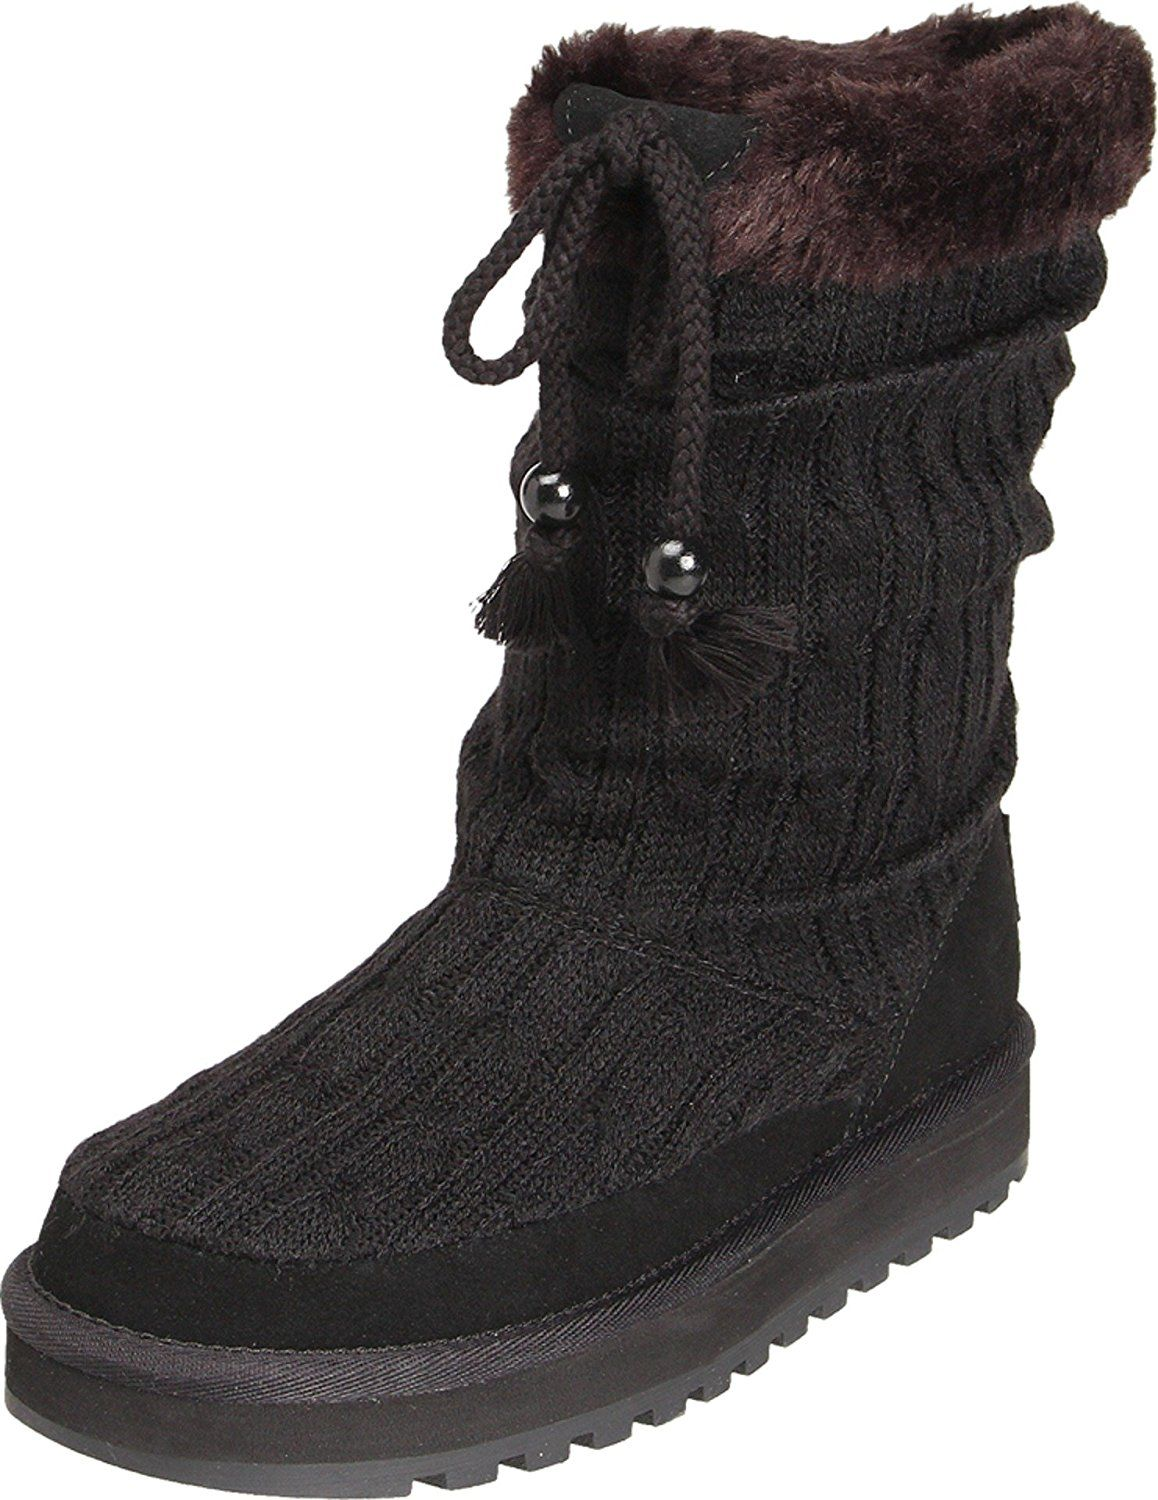 Skechers Women's Keepsakes Blur Winter Slouch Boot => If you love this,  read review